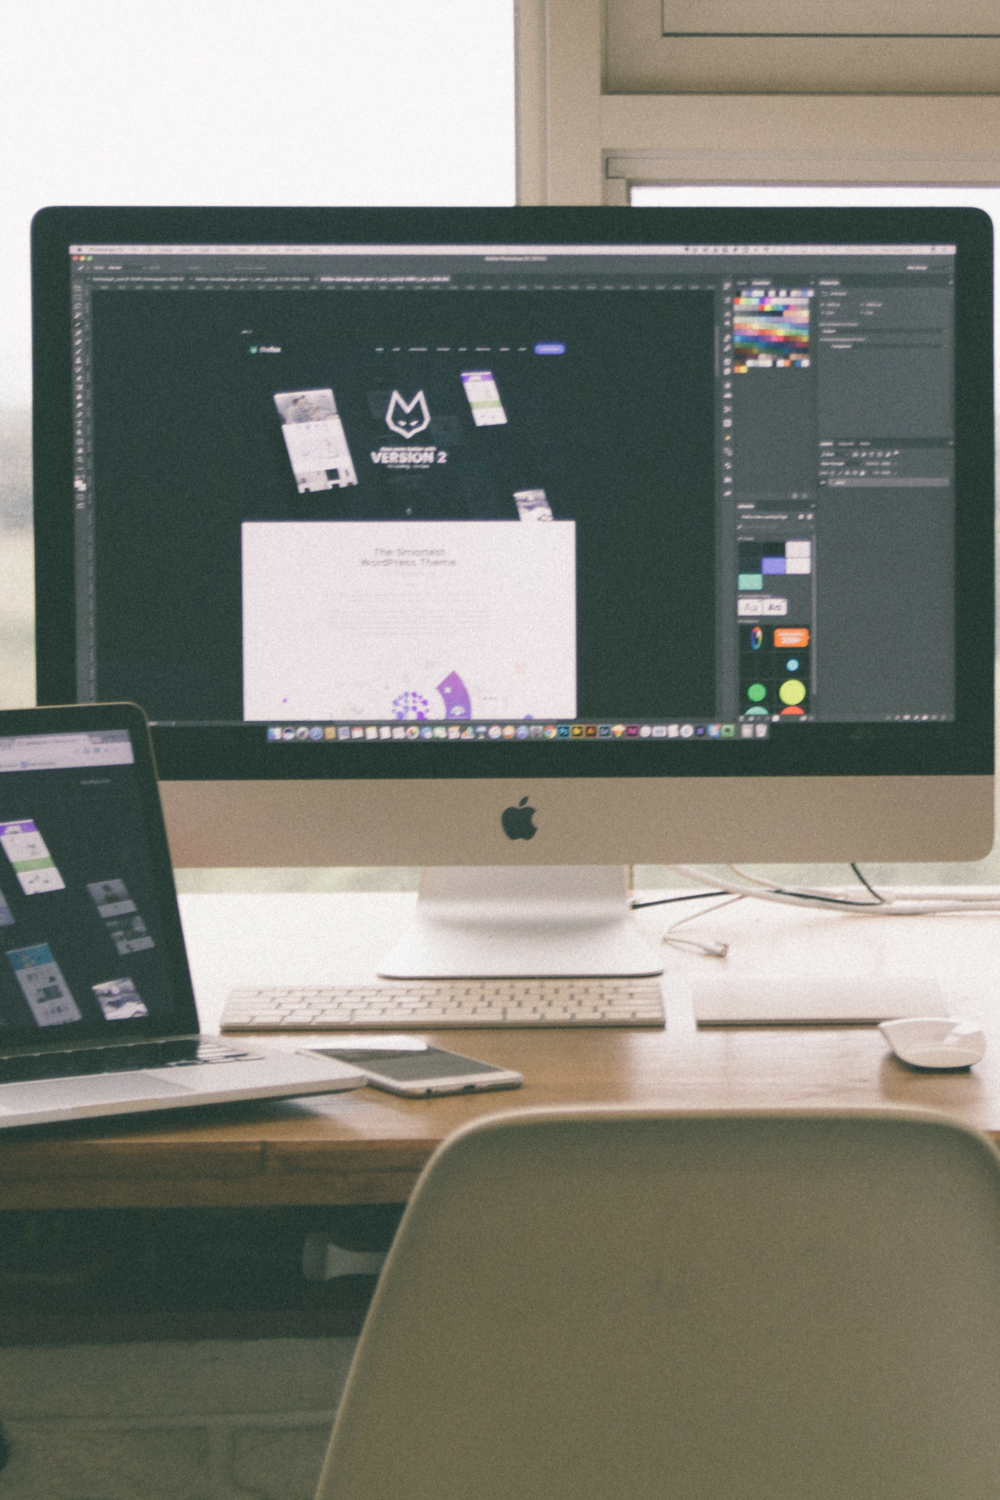 WEB DESIGN - LOOKING FOR A WEBSITE THAT WILL DRIVE MORE ONLINE SALES OR BRING MORE PEOPLE INTO YOUR STORE? WE'LL BUILD YOU A WEBSITE THAT YOU CAN BE PROUD OF.